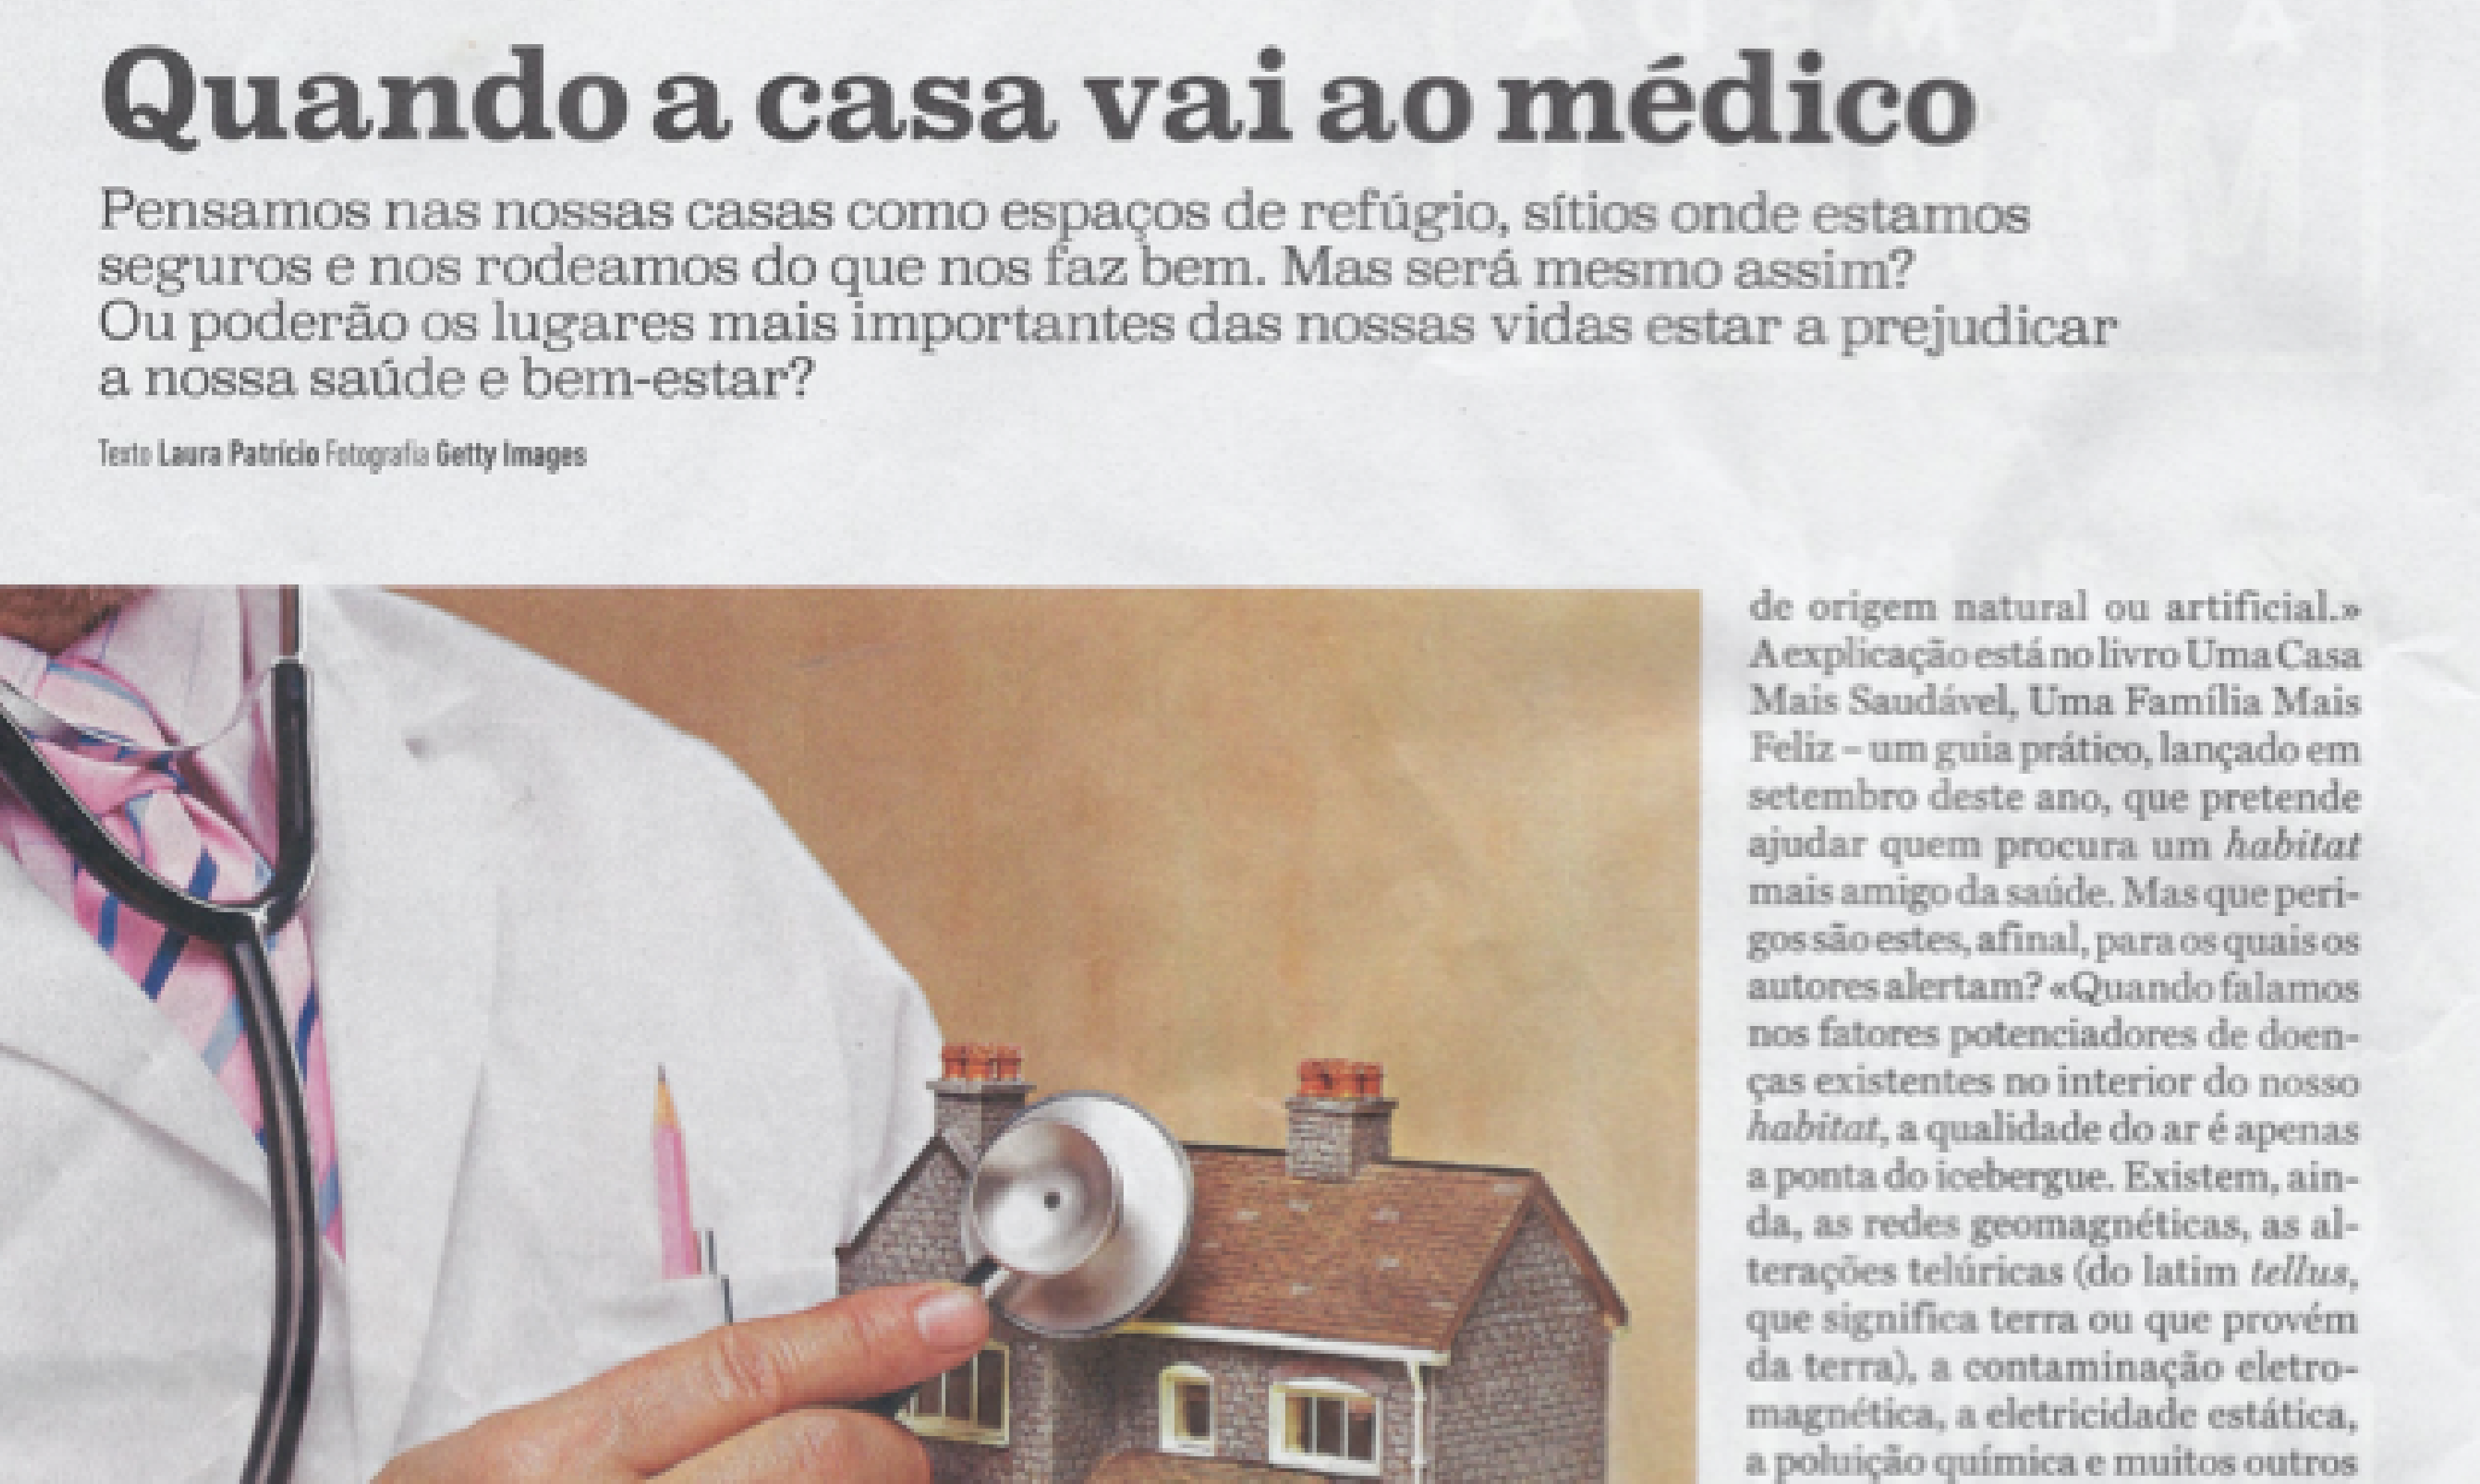 Report in Notícias Magazine about the book